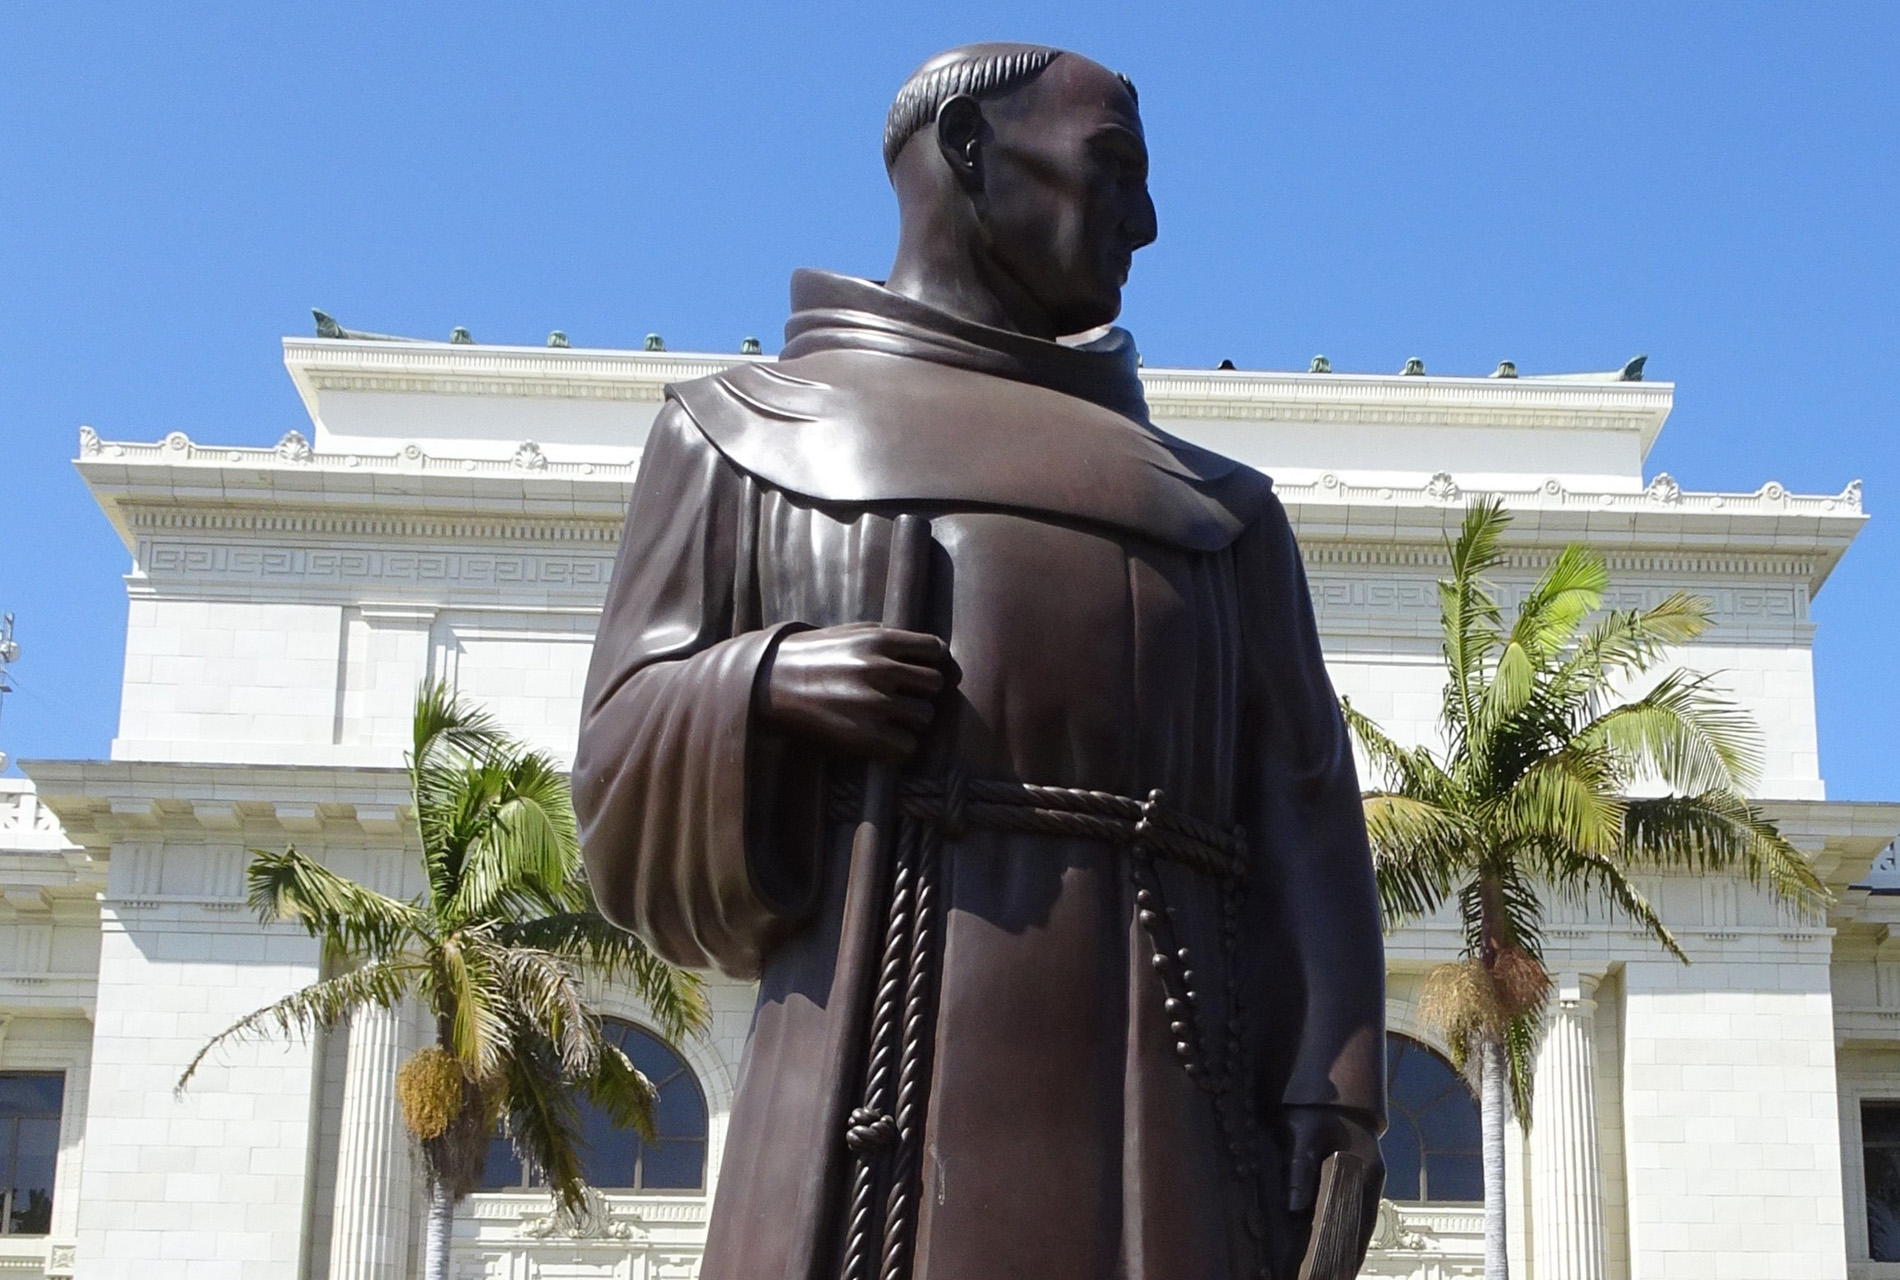 A bronze figure of the 18th century missionary Junípero Serra stands outside Ventura City Hall, sculpted in 1936 by Uno John Palo Kangas. Indigenous activists say a reckoning with Serra's legacy is long overdue.